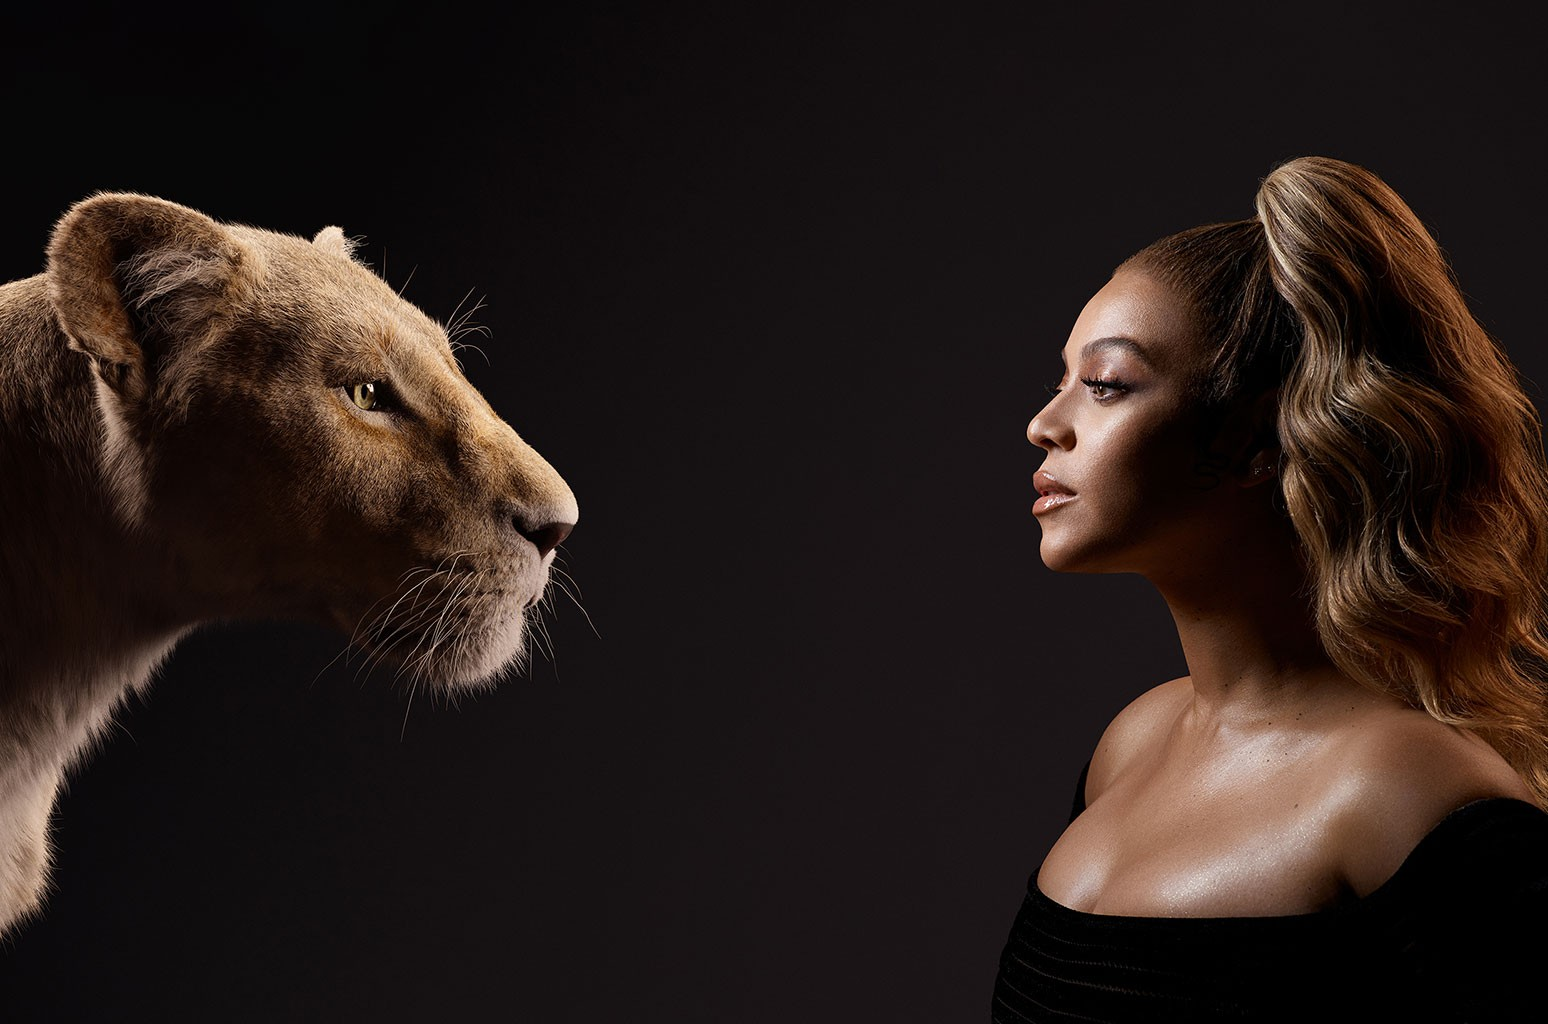 Nala and Beyoncé Knowles-Carter